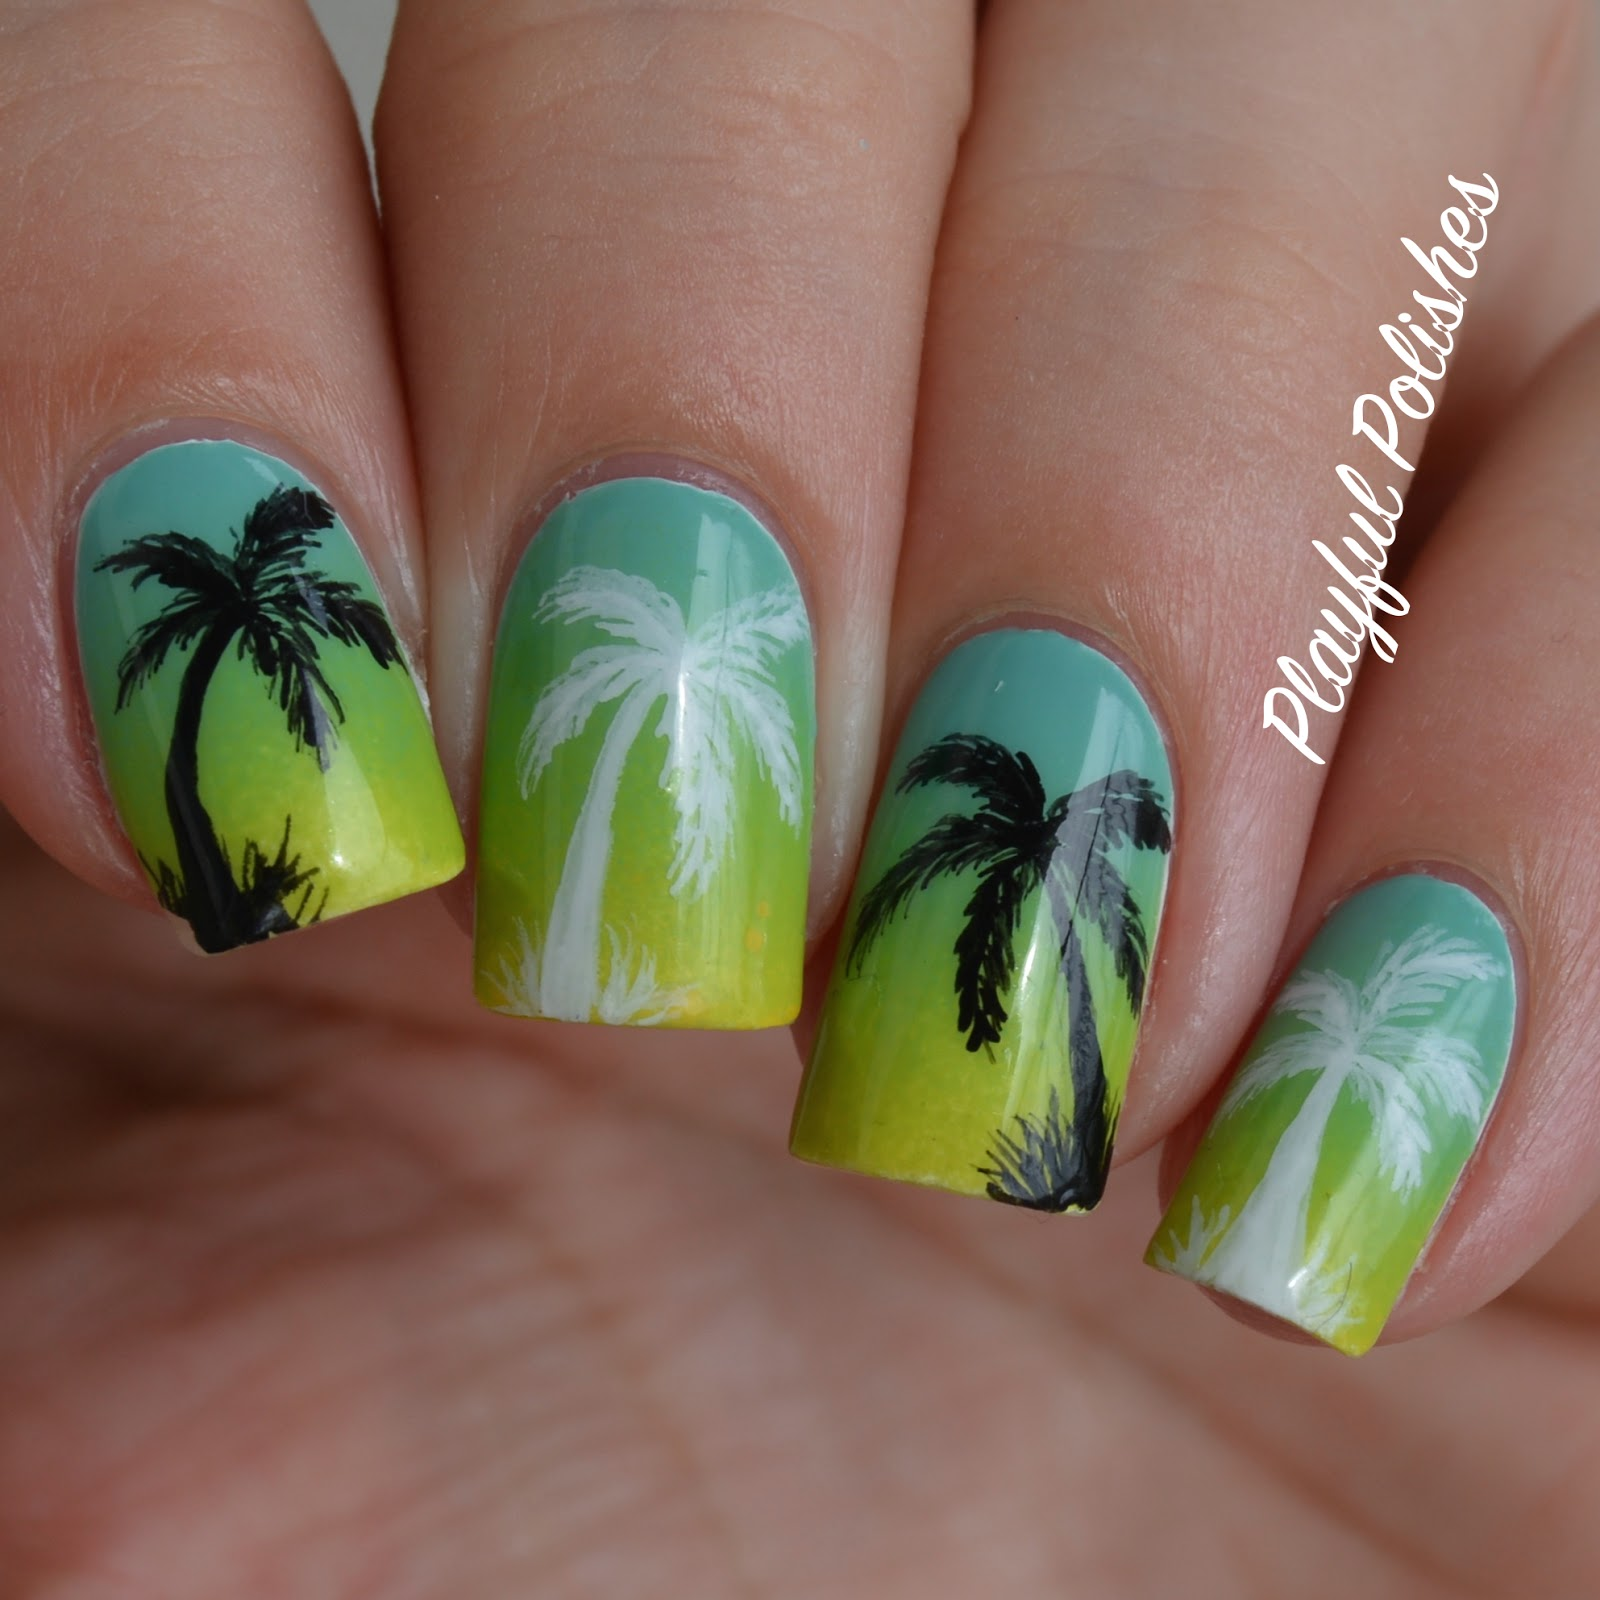 Hand Painted Nail Art Simple: Playful Polishes: GRADIENT PALM TREE NAIL ART